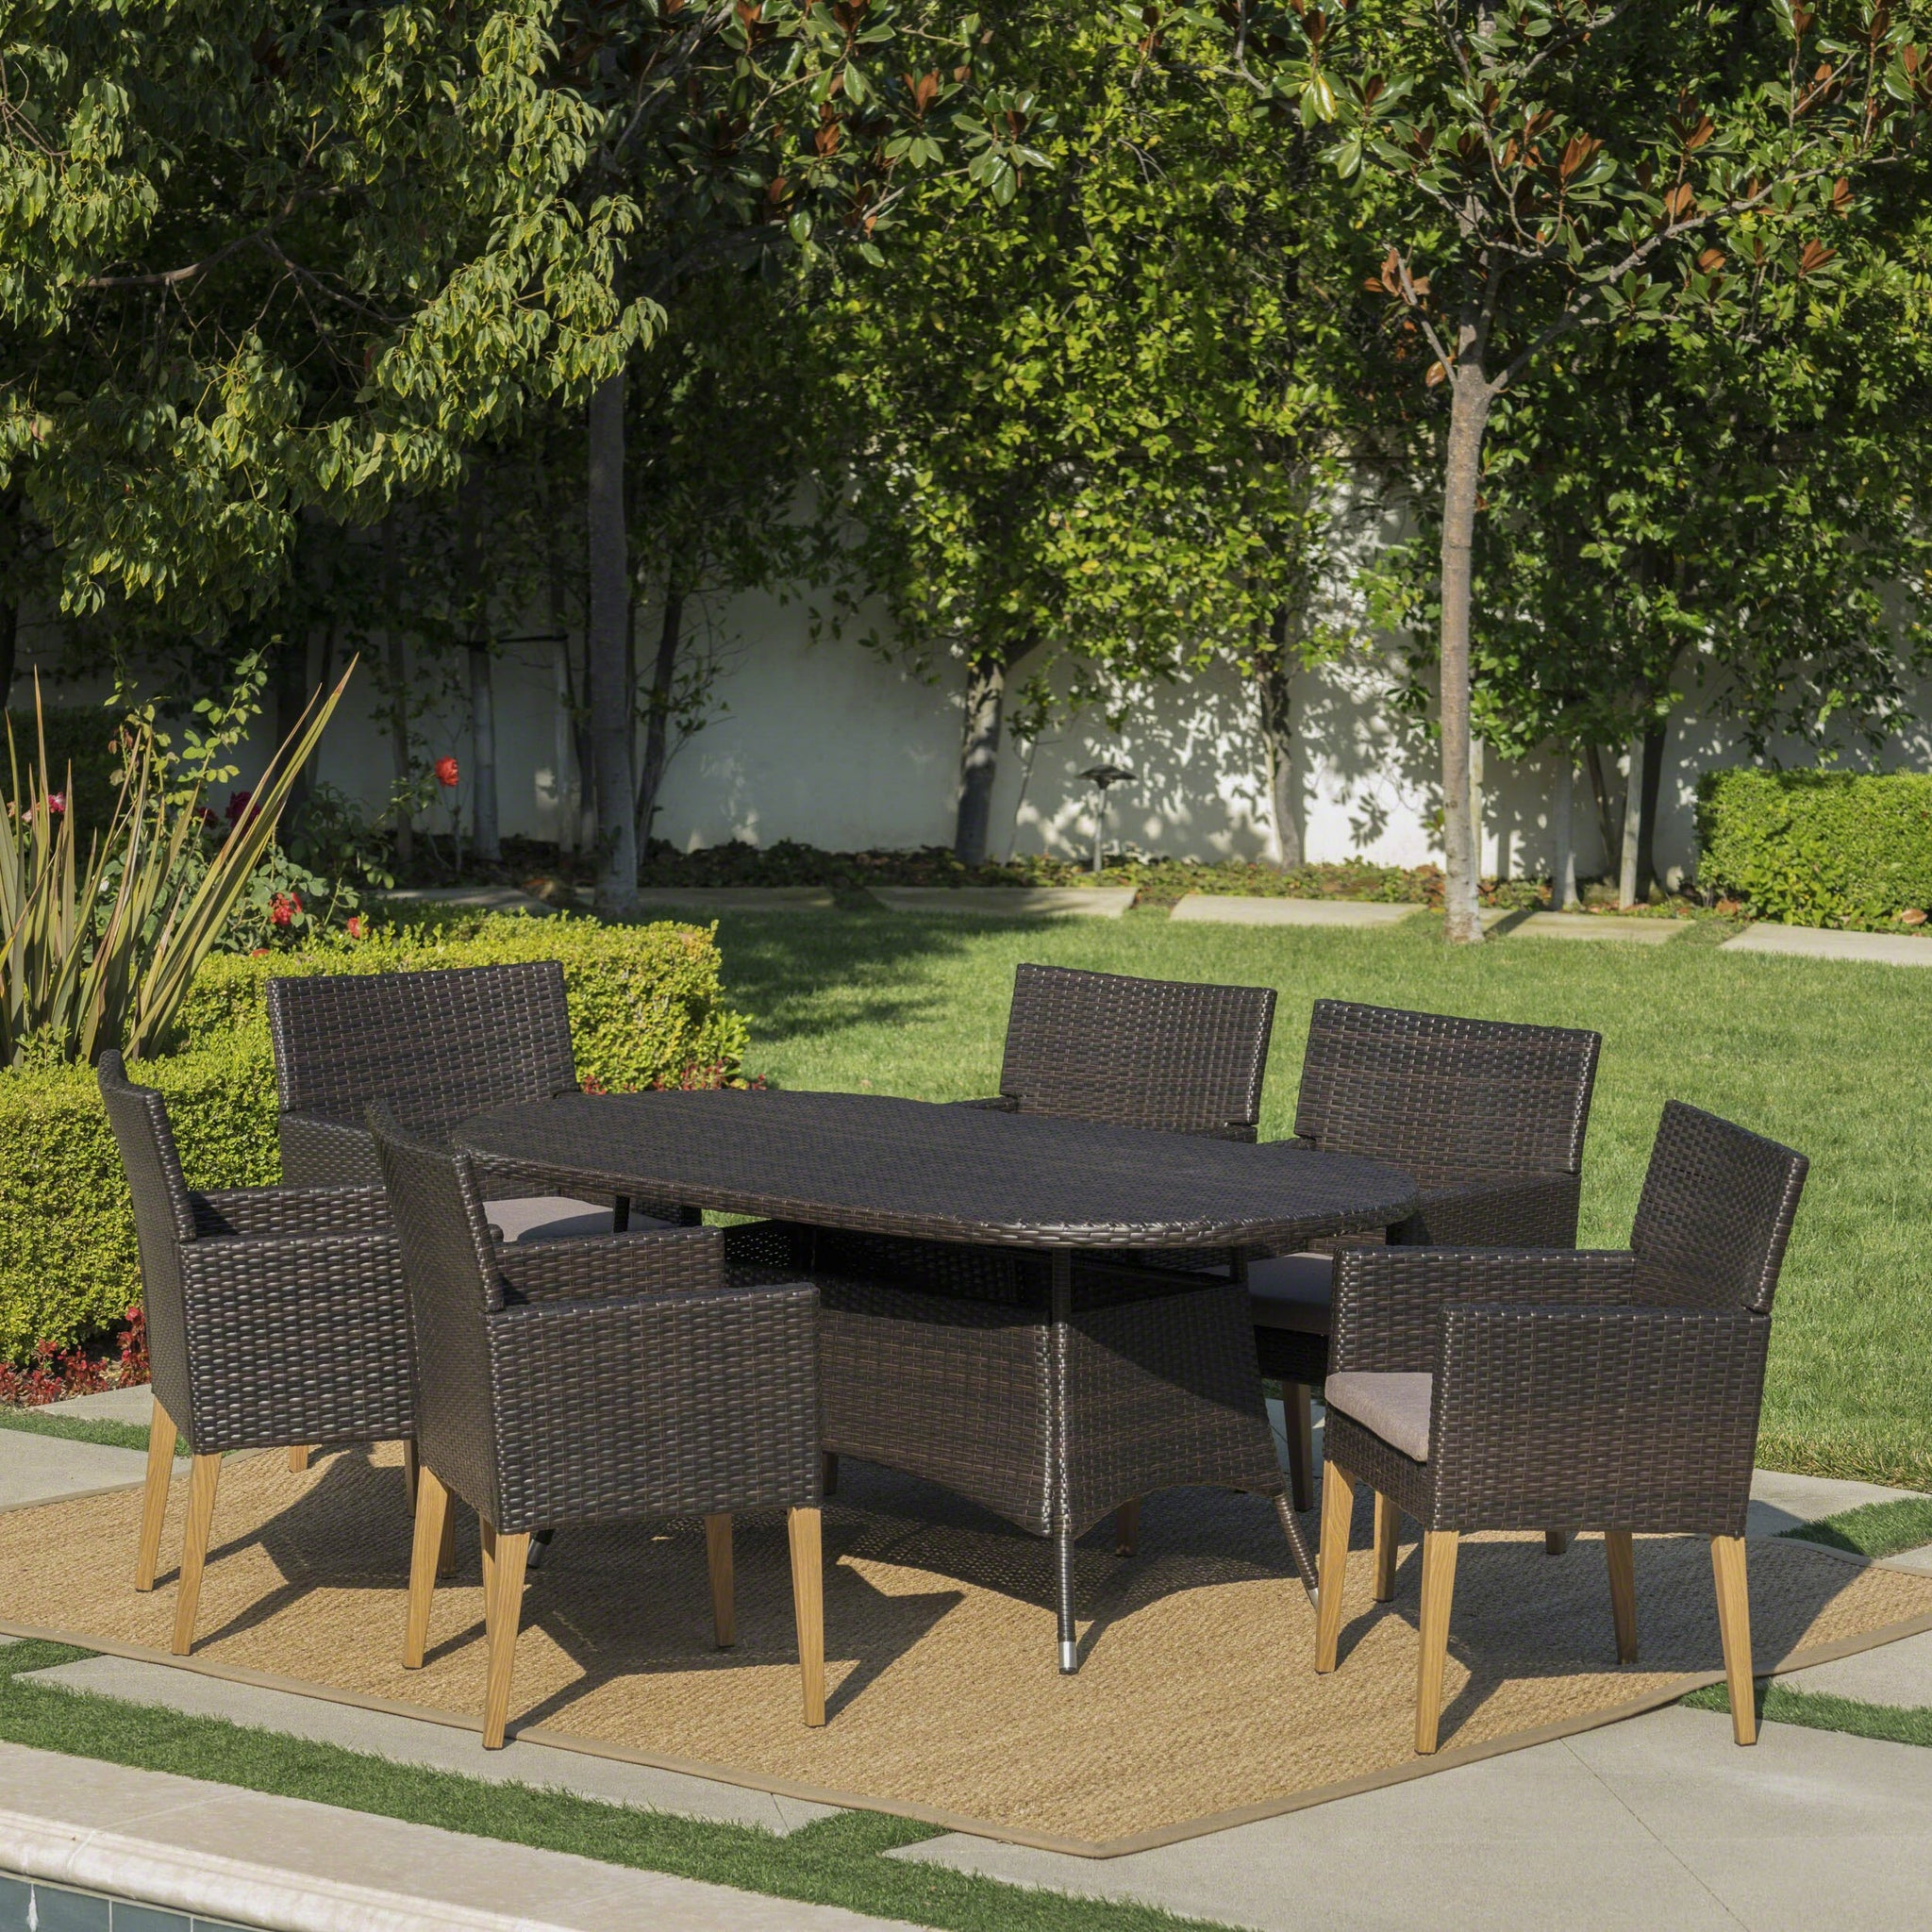 Bardow Outdoor 7 Piece Wicker Oval Dining Set With Wood Finished Legs And Water Resistant Cushions